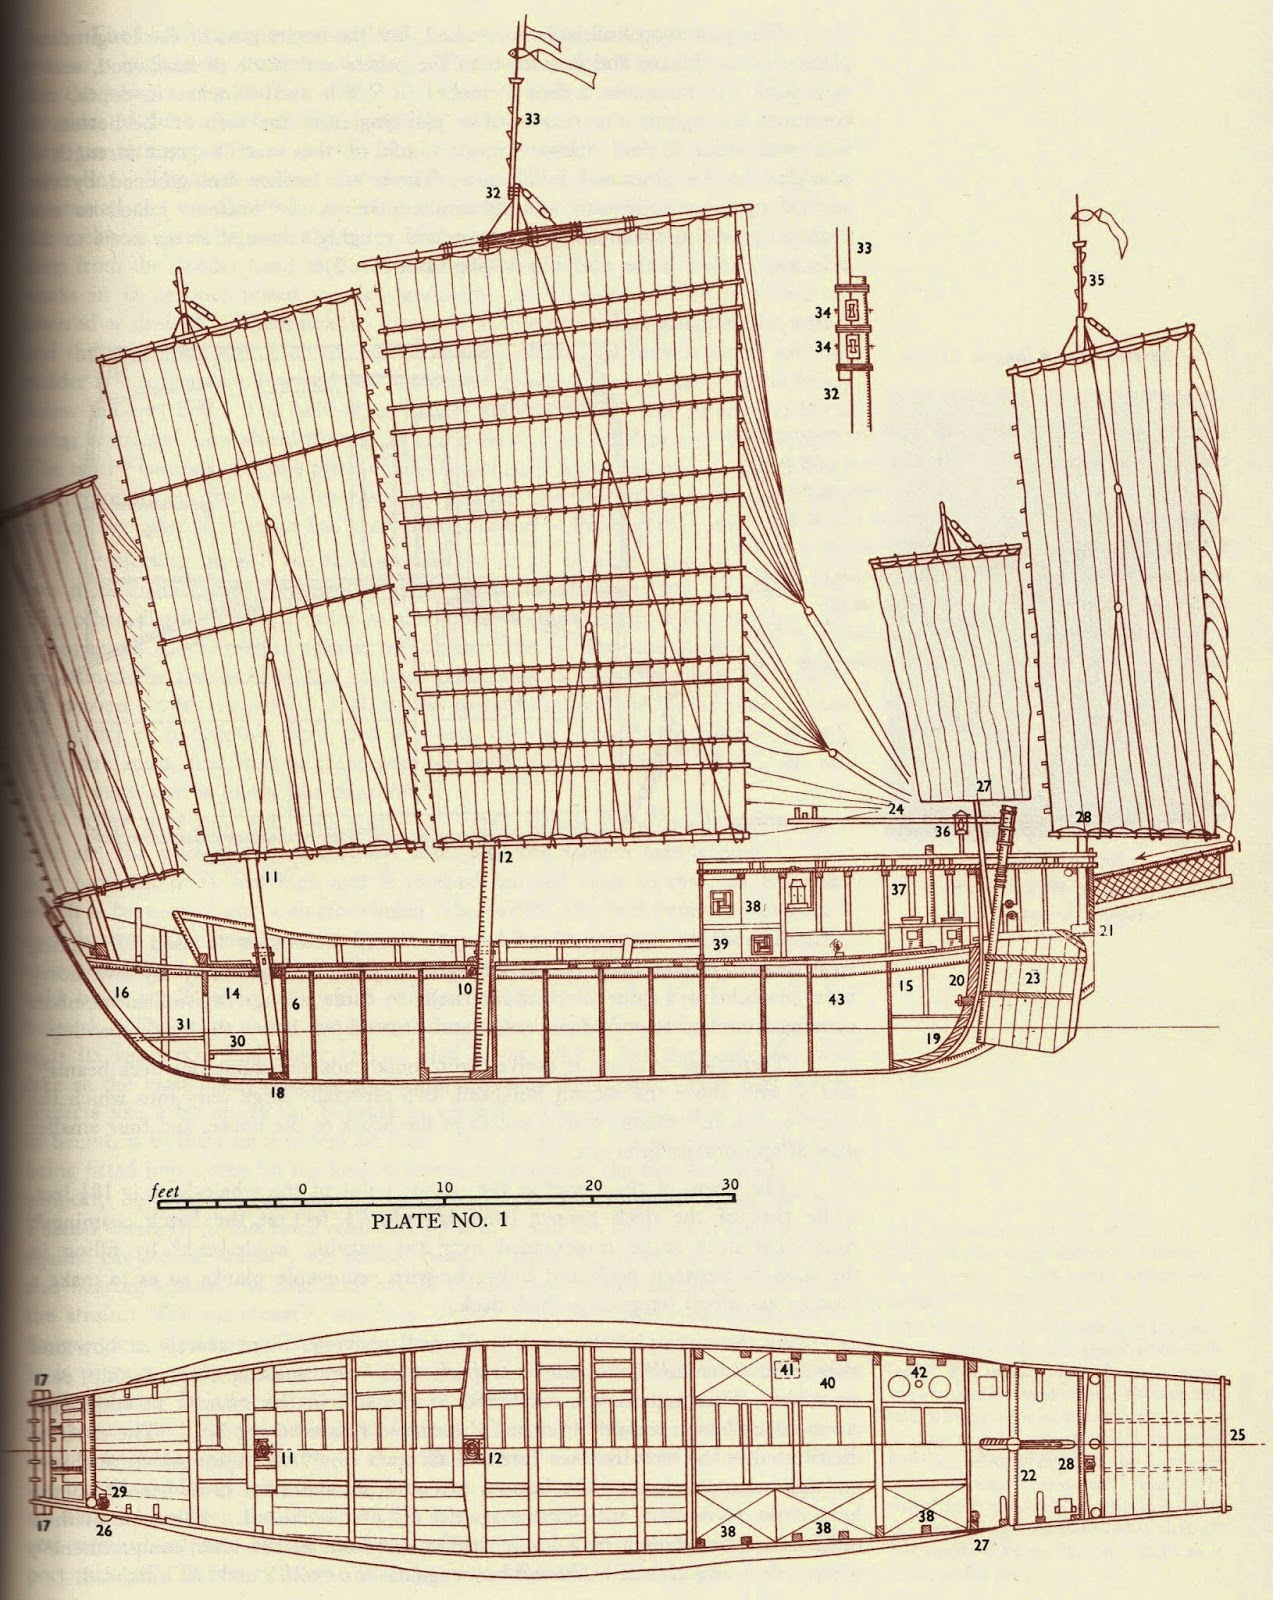 sha-ch'uan or sand boat sail plan and interior arrangement